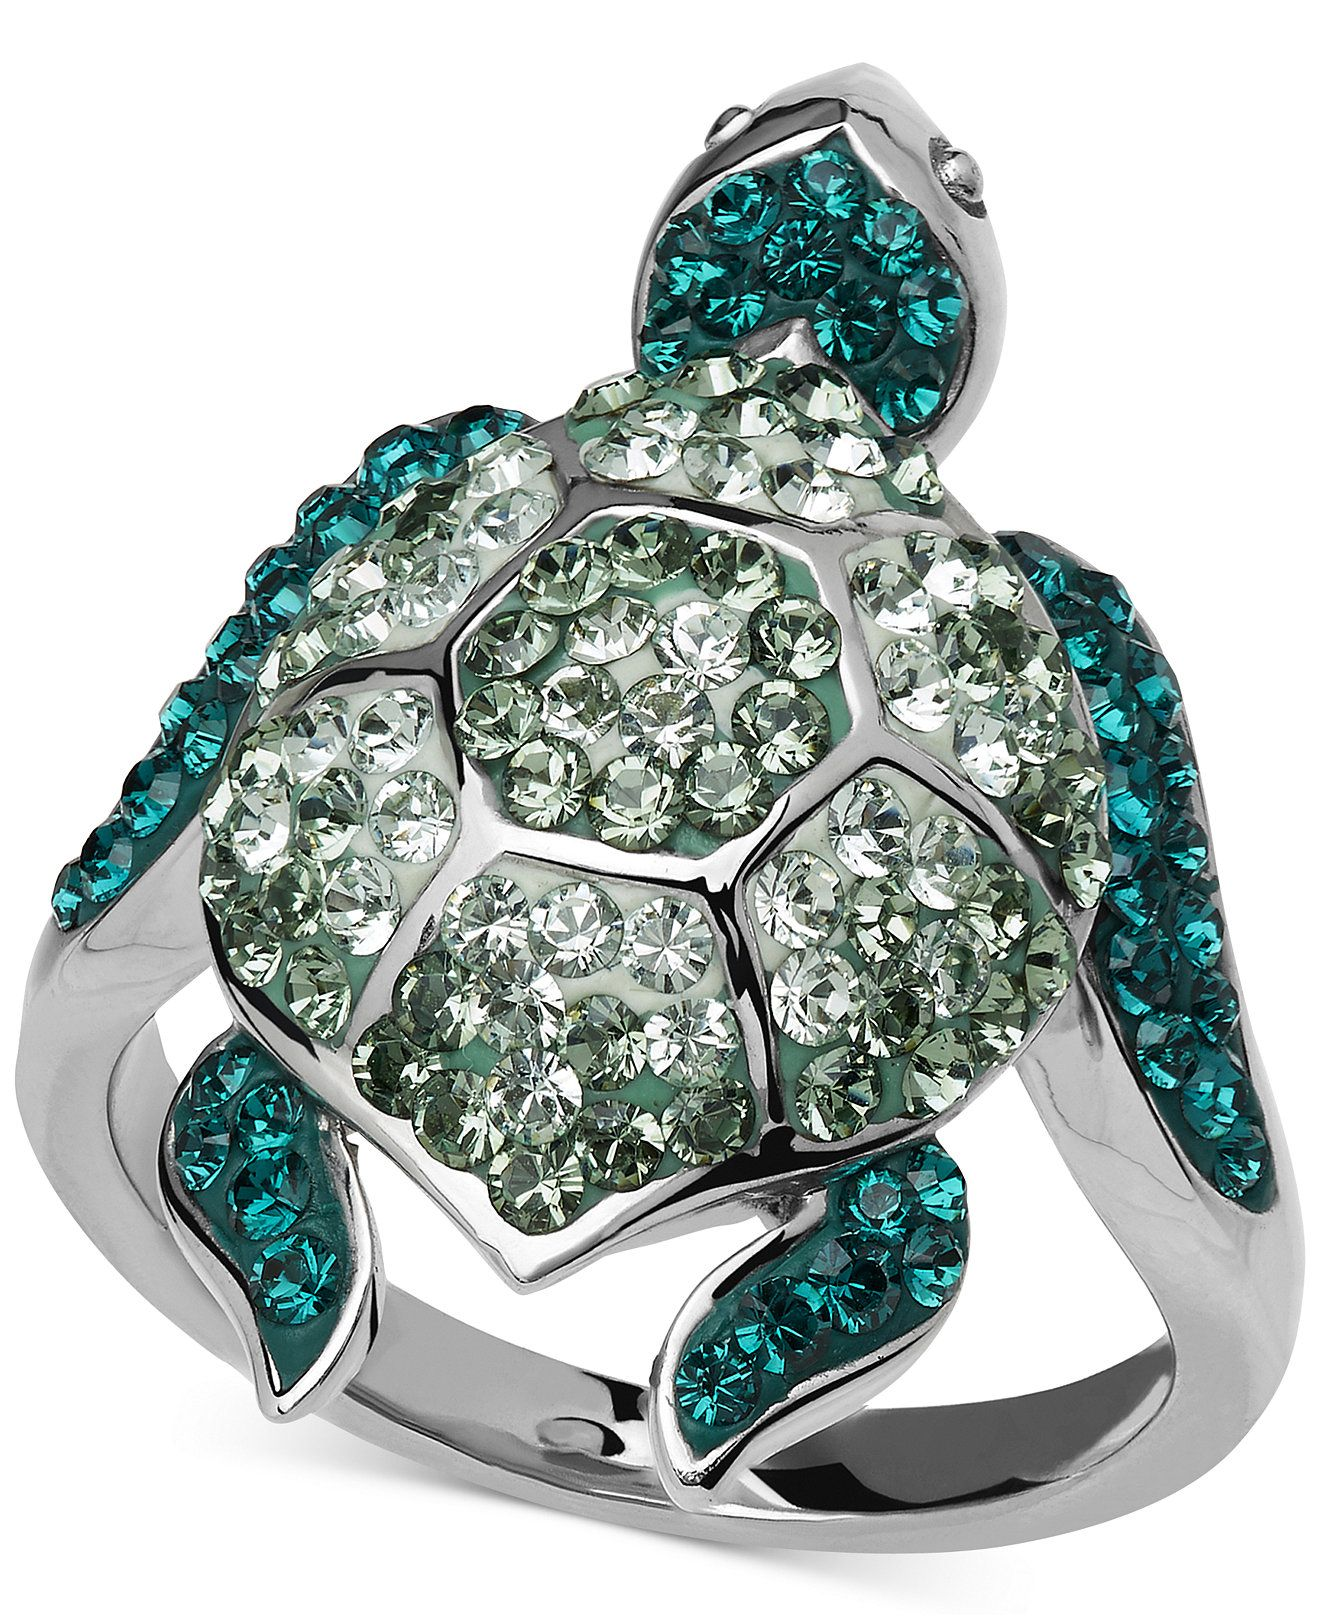 Kaleidoscope Green Swarovski Crystal Turtle Ring In. My Heart Engagement Rings. Natural Peridot Engagement Rings. Cheap Emerald Engagement Wedding Rings. Bicolor Engagement Rings. Bad Men Wedding Engagement Rings. Modern Fashion Wedding Rings. Non Standard Engagement Rings. 8mm Tungsten Engagement Rings